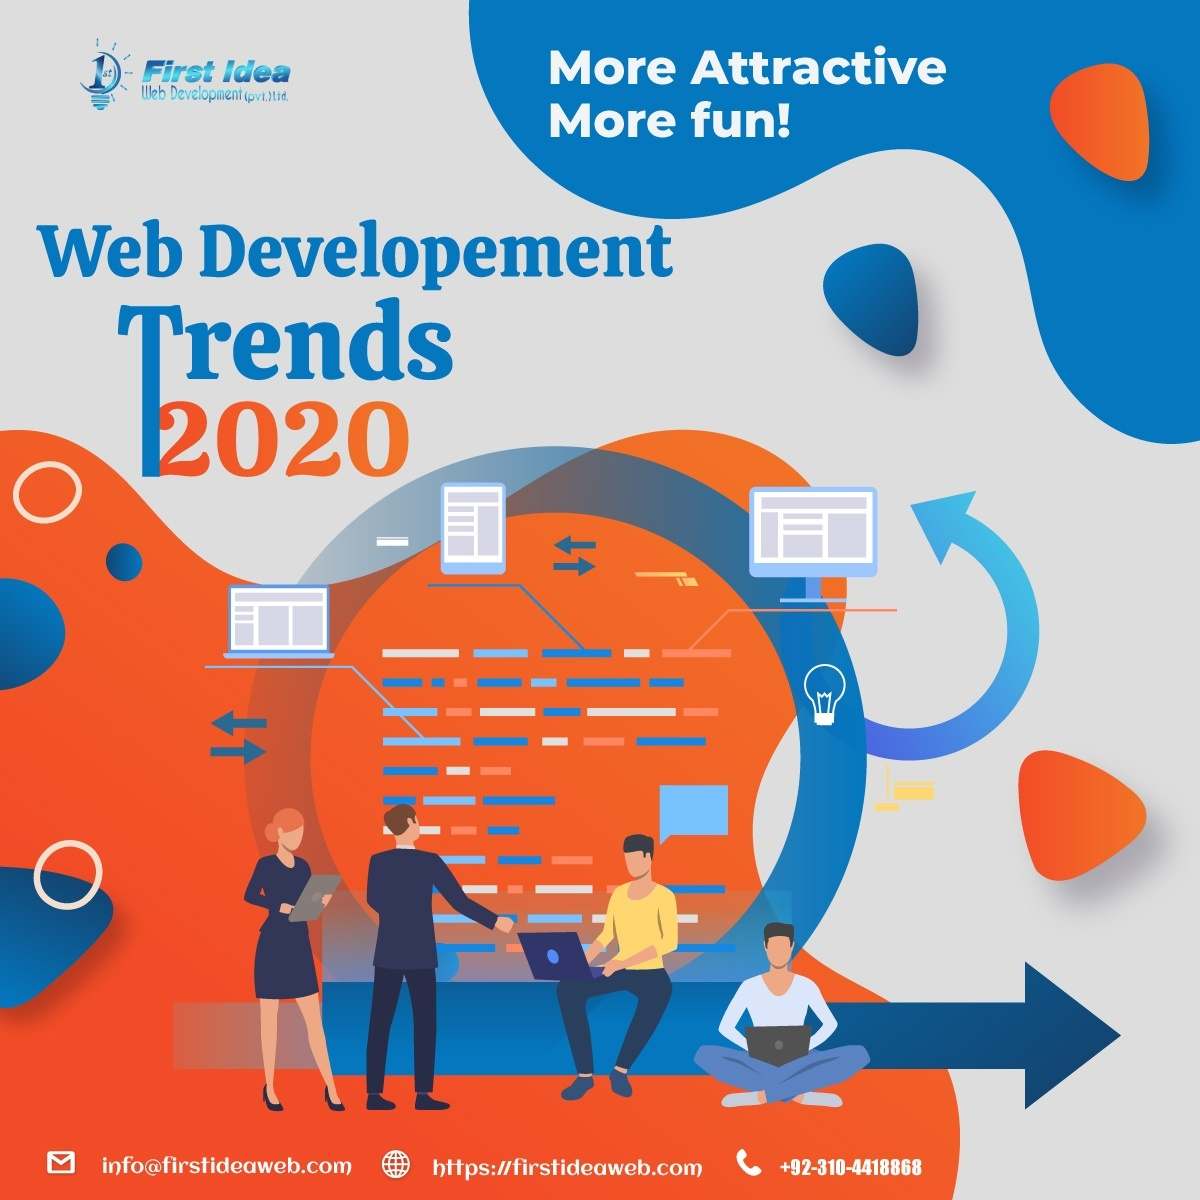 trends in web development 2020, future of web development 2020,